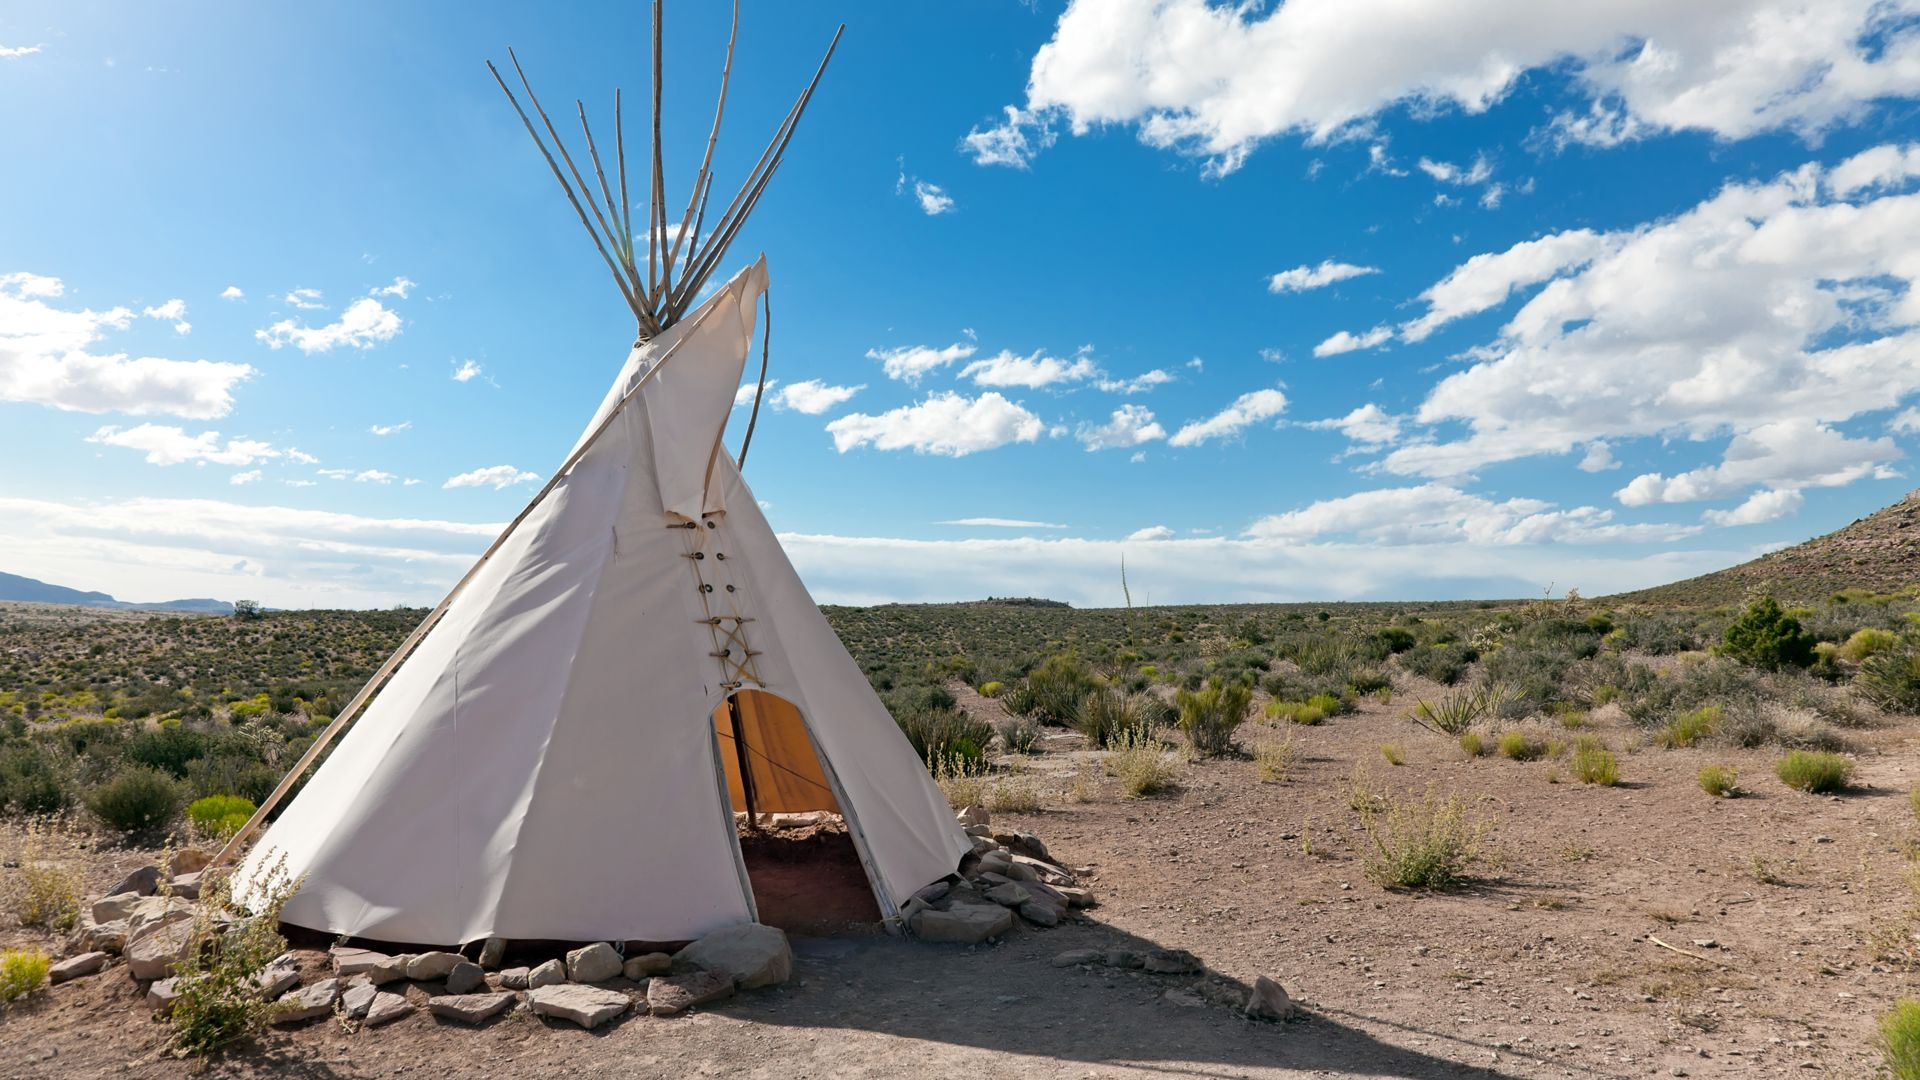 A traditional Tipi, sitting among a green desert landscape at Hualapai Ranch